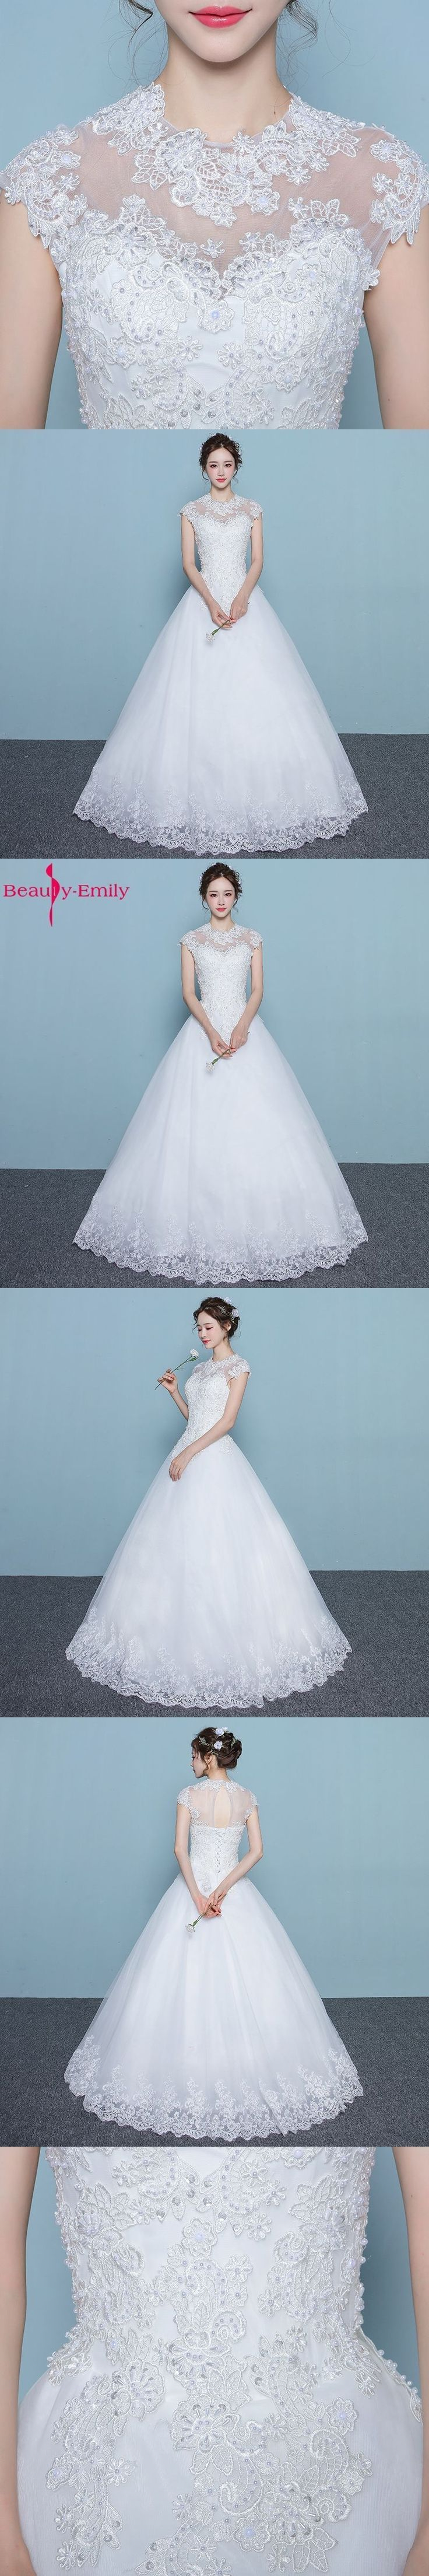 Beauty-Emily Wedding dresses 2017 Plus Size White Ball Gown O-Neck Cap Sleeve Lace Up Appliques Bridal Gowns Wedding Party #weddingdress